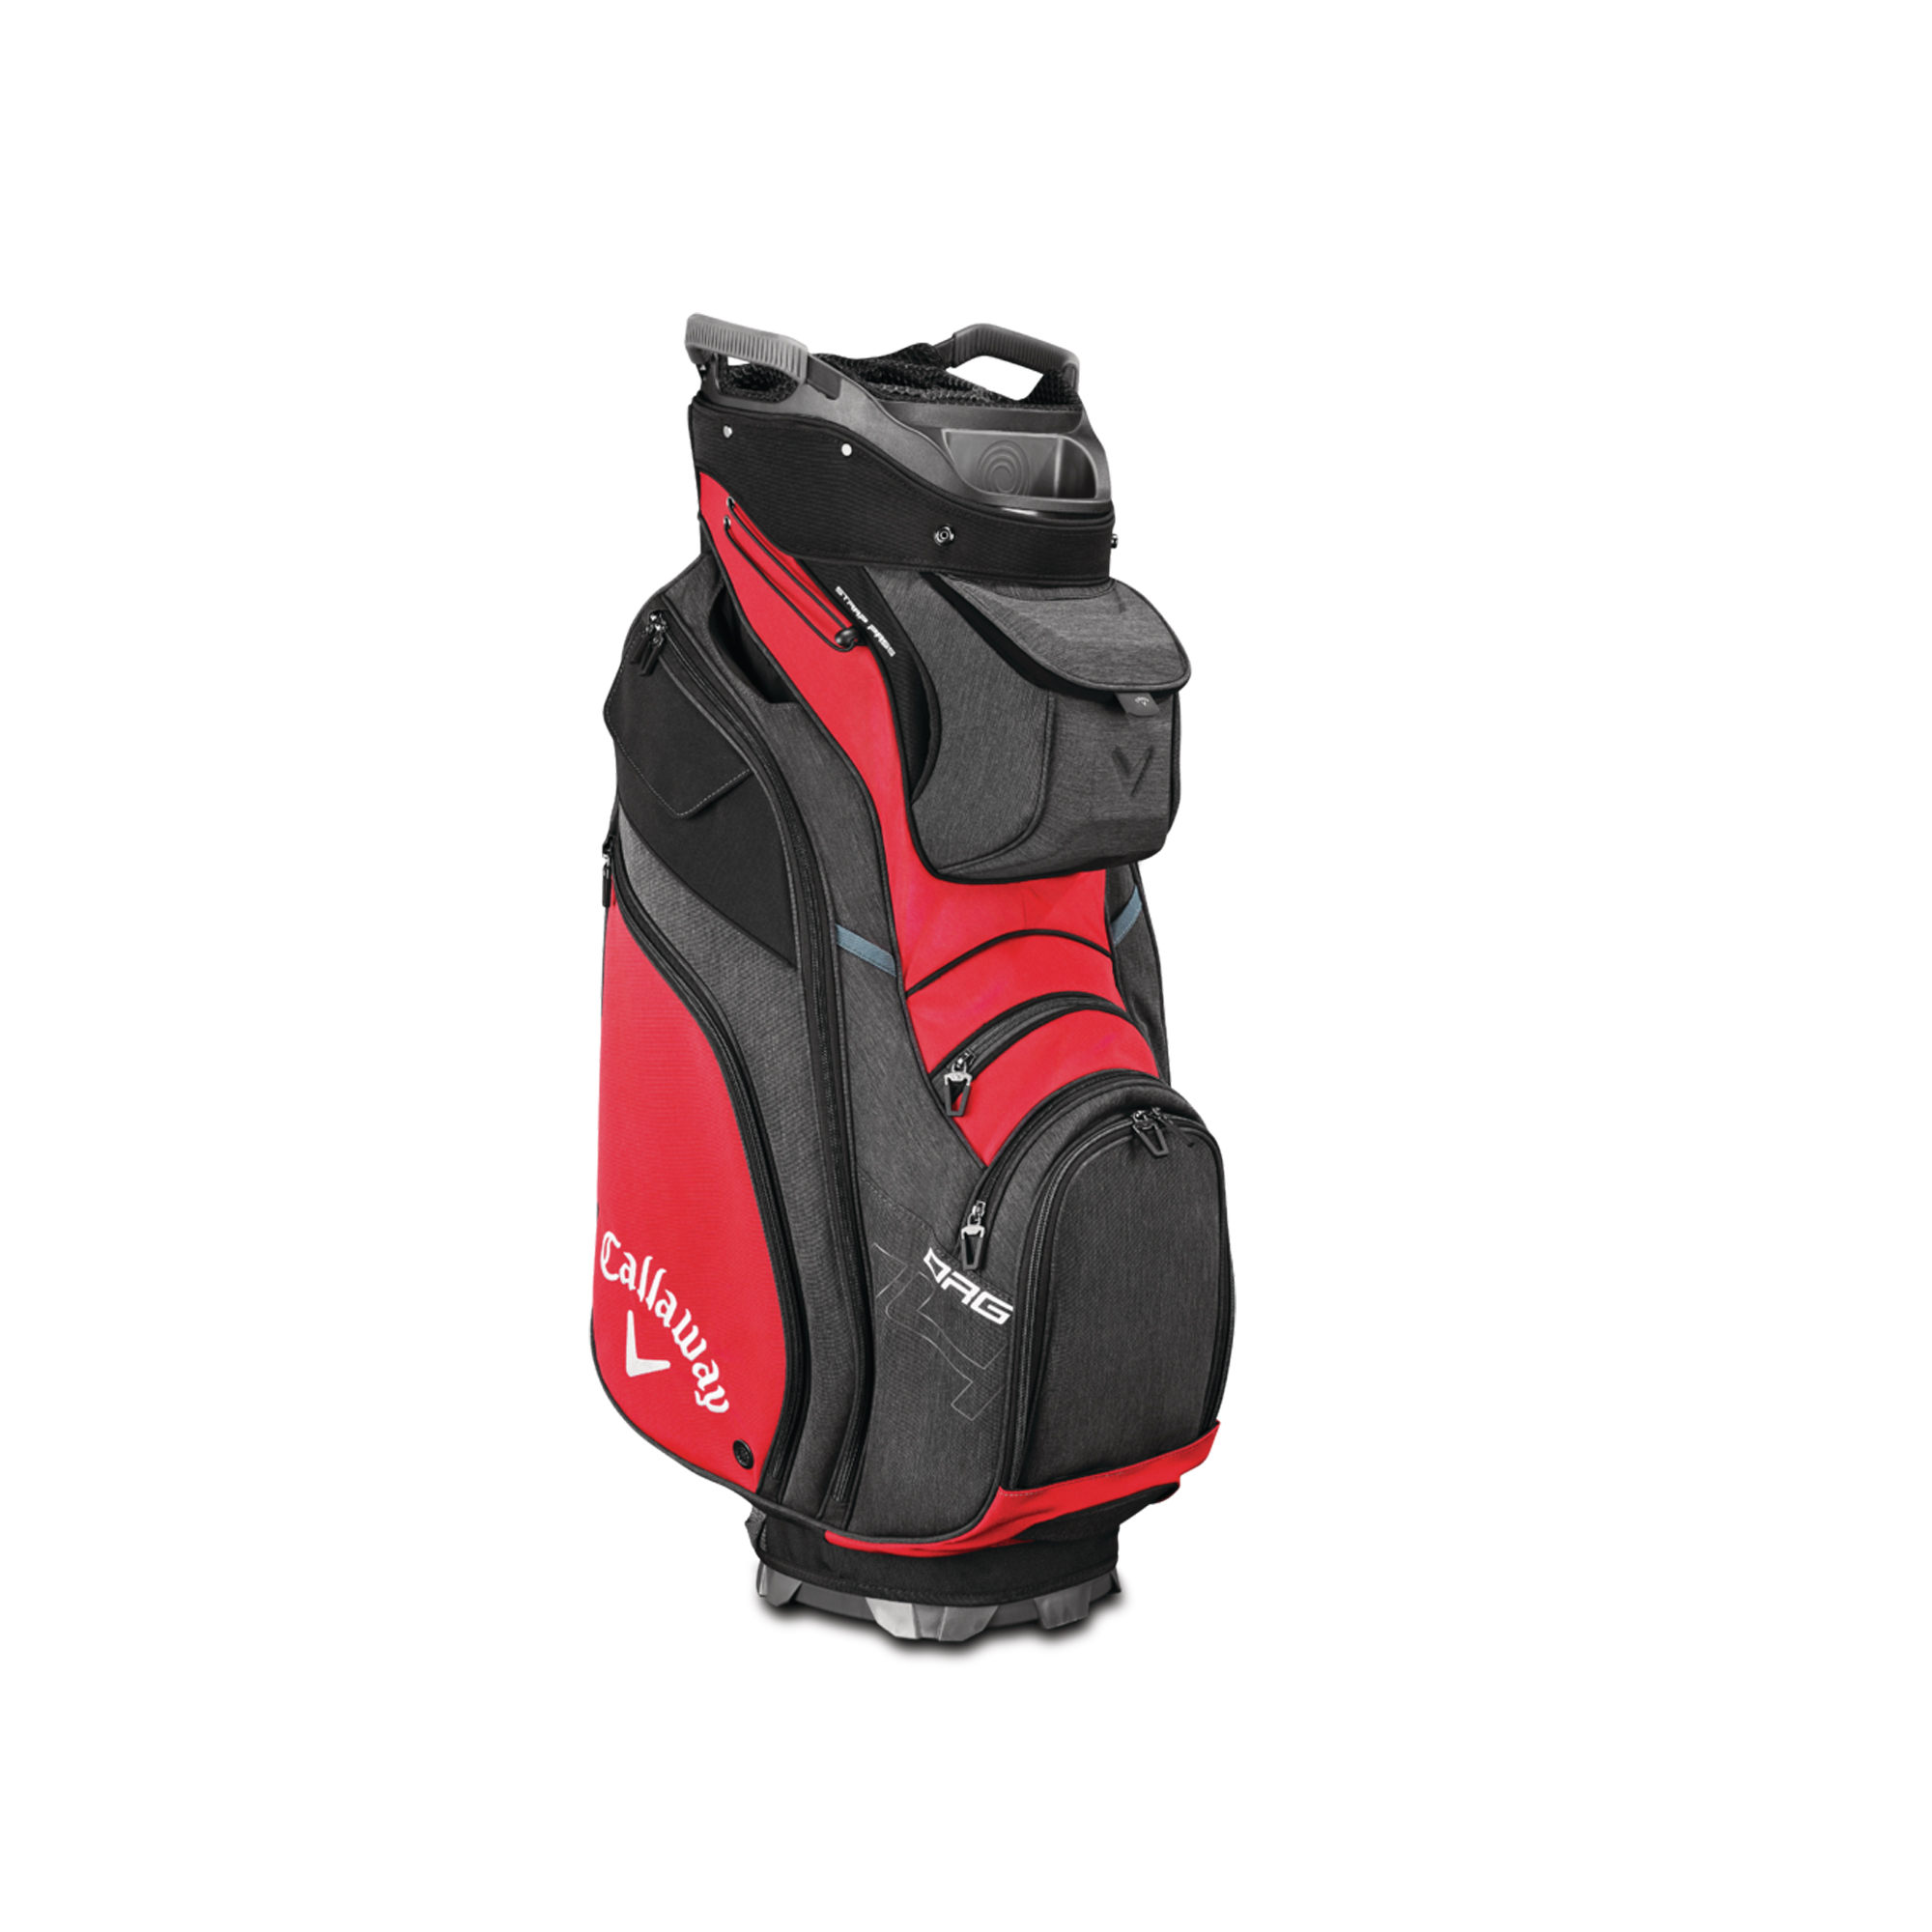 Callaway ORG 14 Cart Golf Bag Red/Black/Titanium